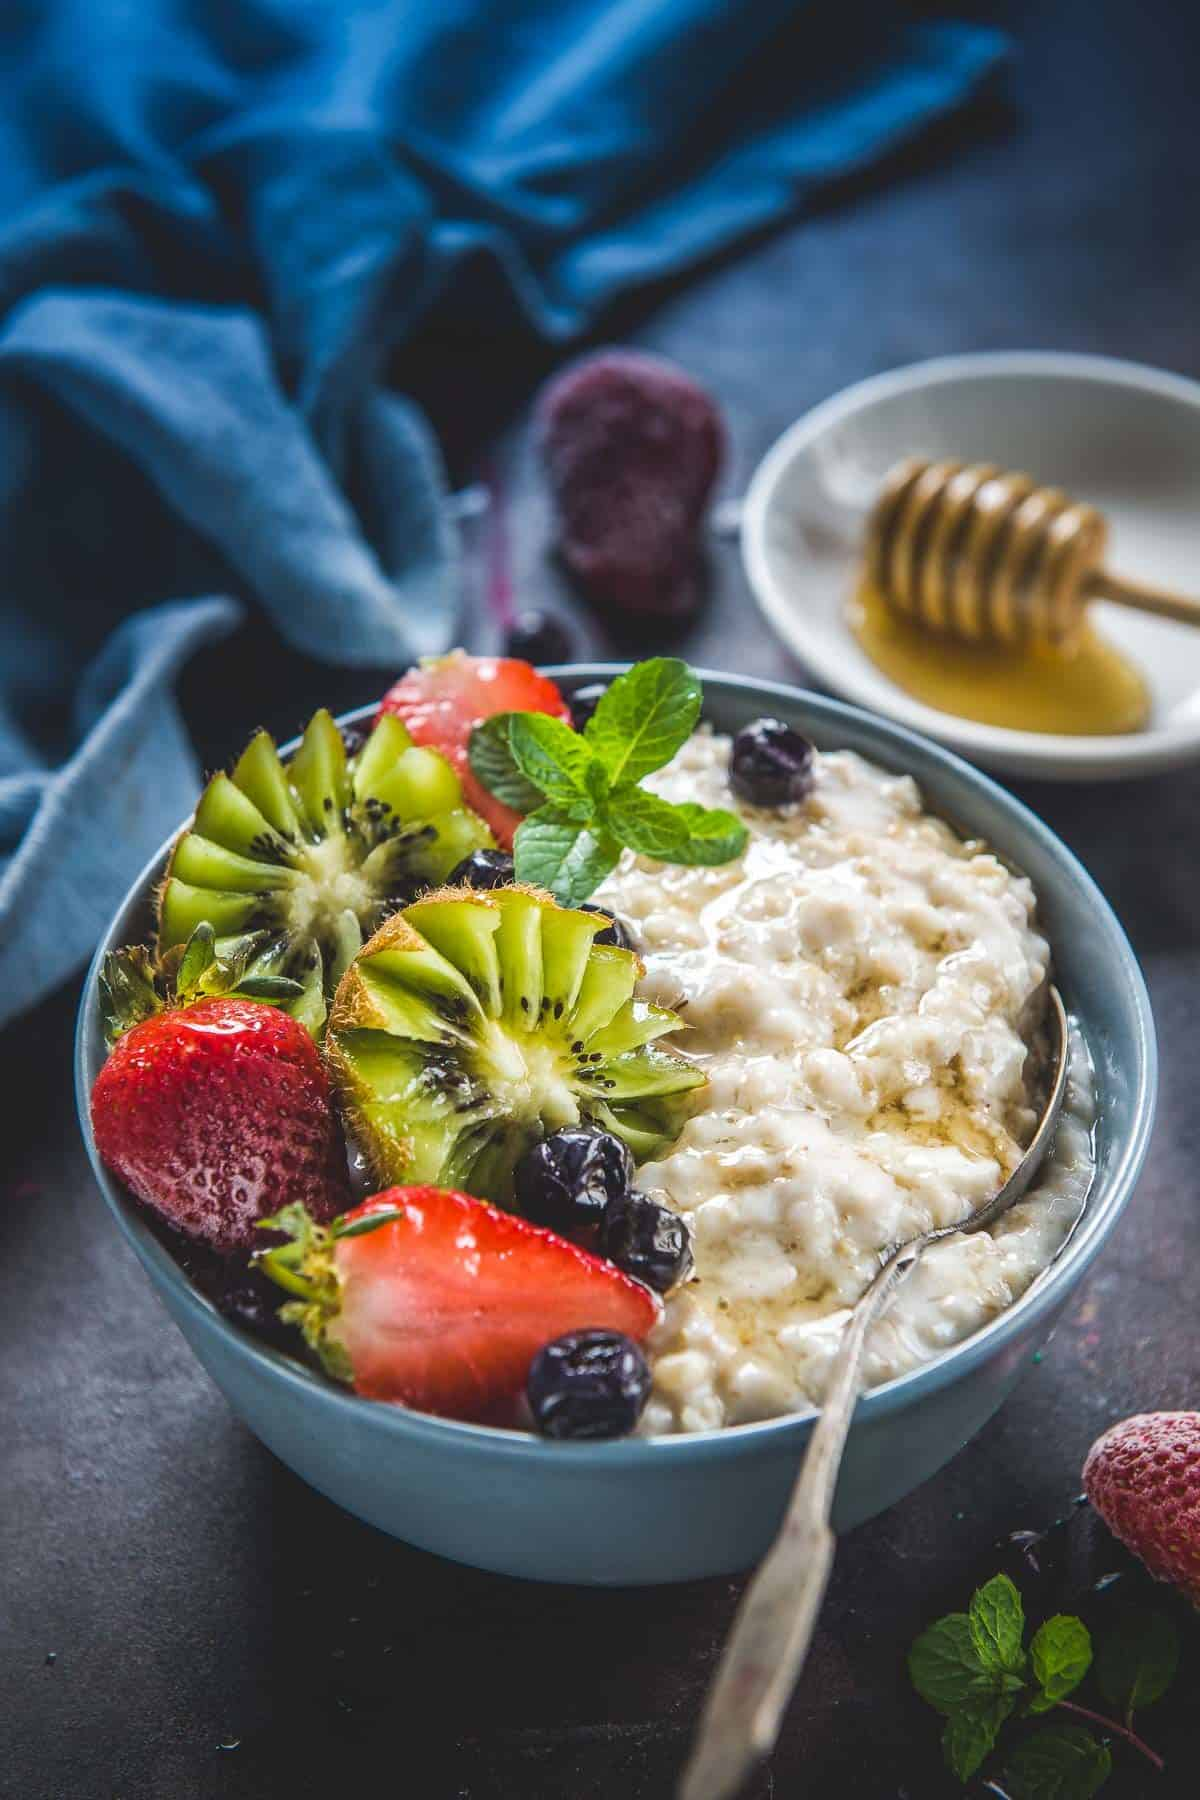 Instant pot oatmeal served in a bowl.